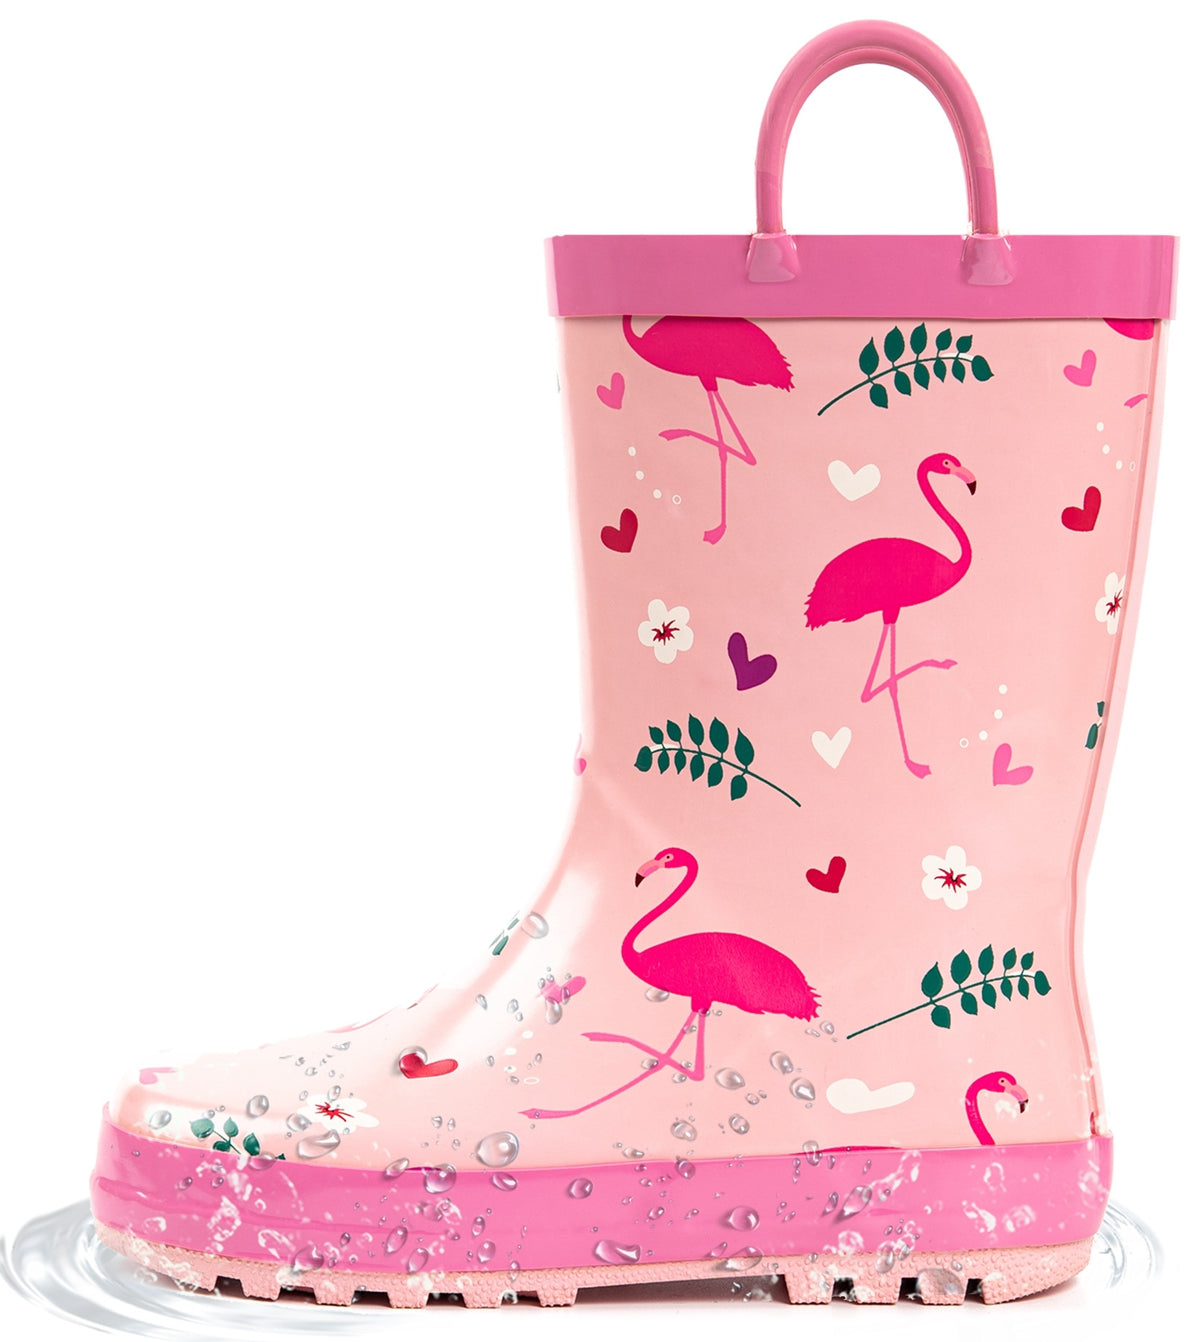 Outee Toddler Kids Girls Rubber Rain Boots Cute Printed with Easy-On Handles - Pink Flamingo